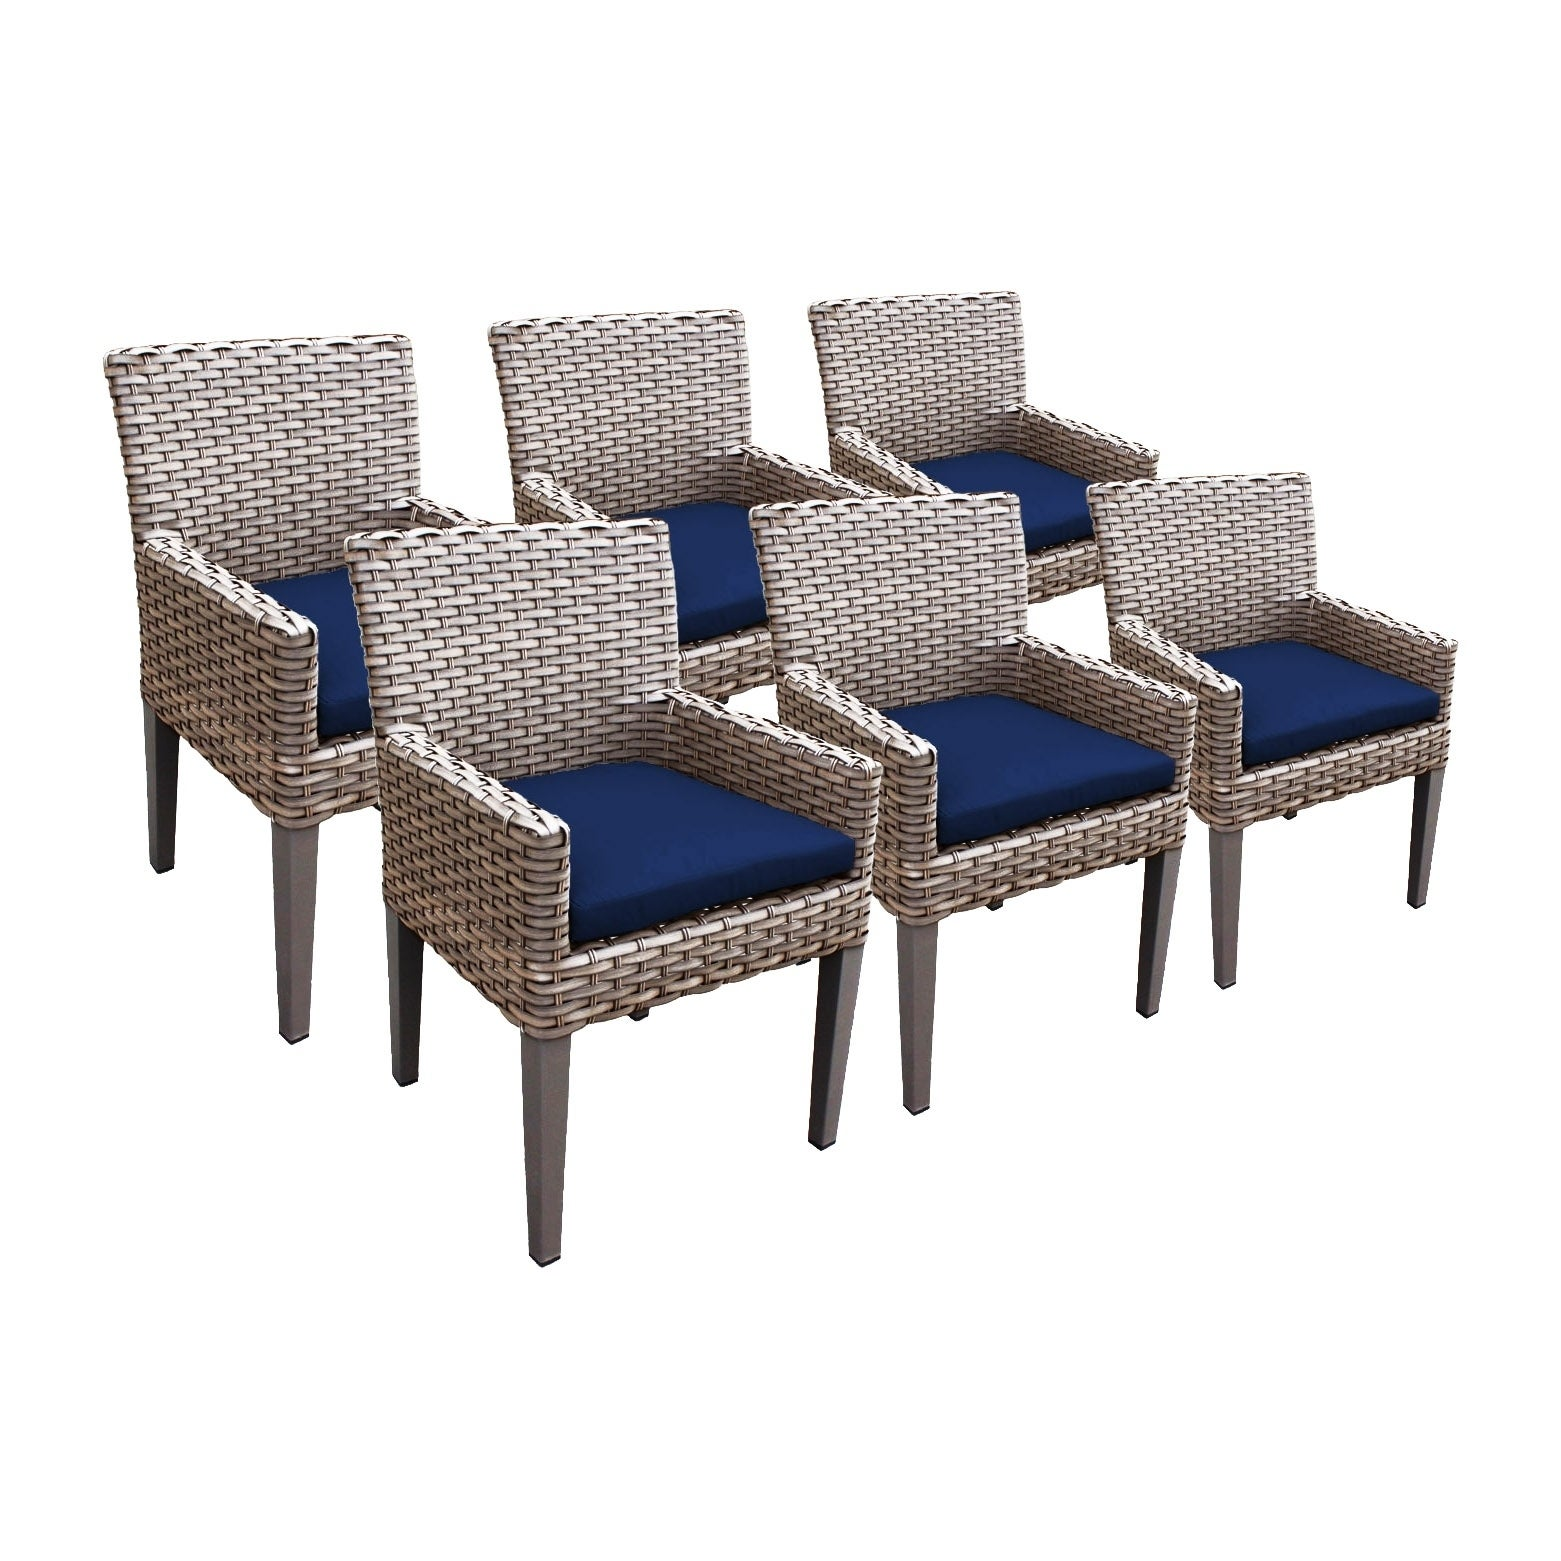 Shop sea breeze oh0634 outdoor patio wicker dining chairs with arms set of 6 free shipping today overstock 21178766